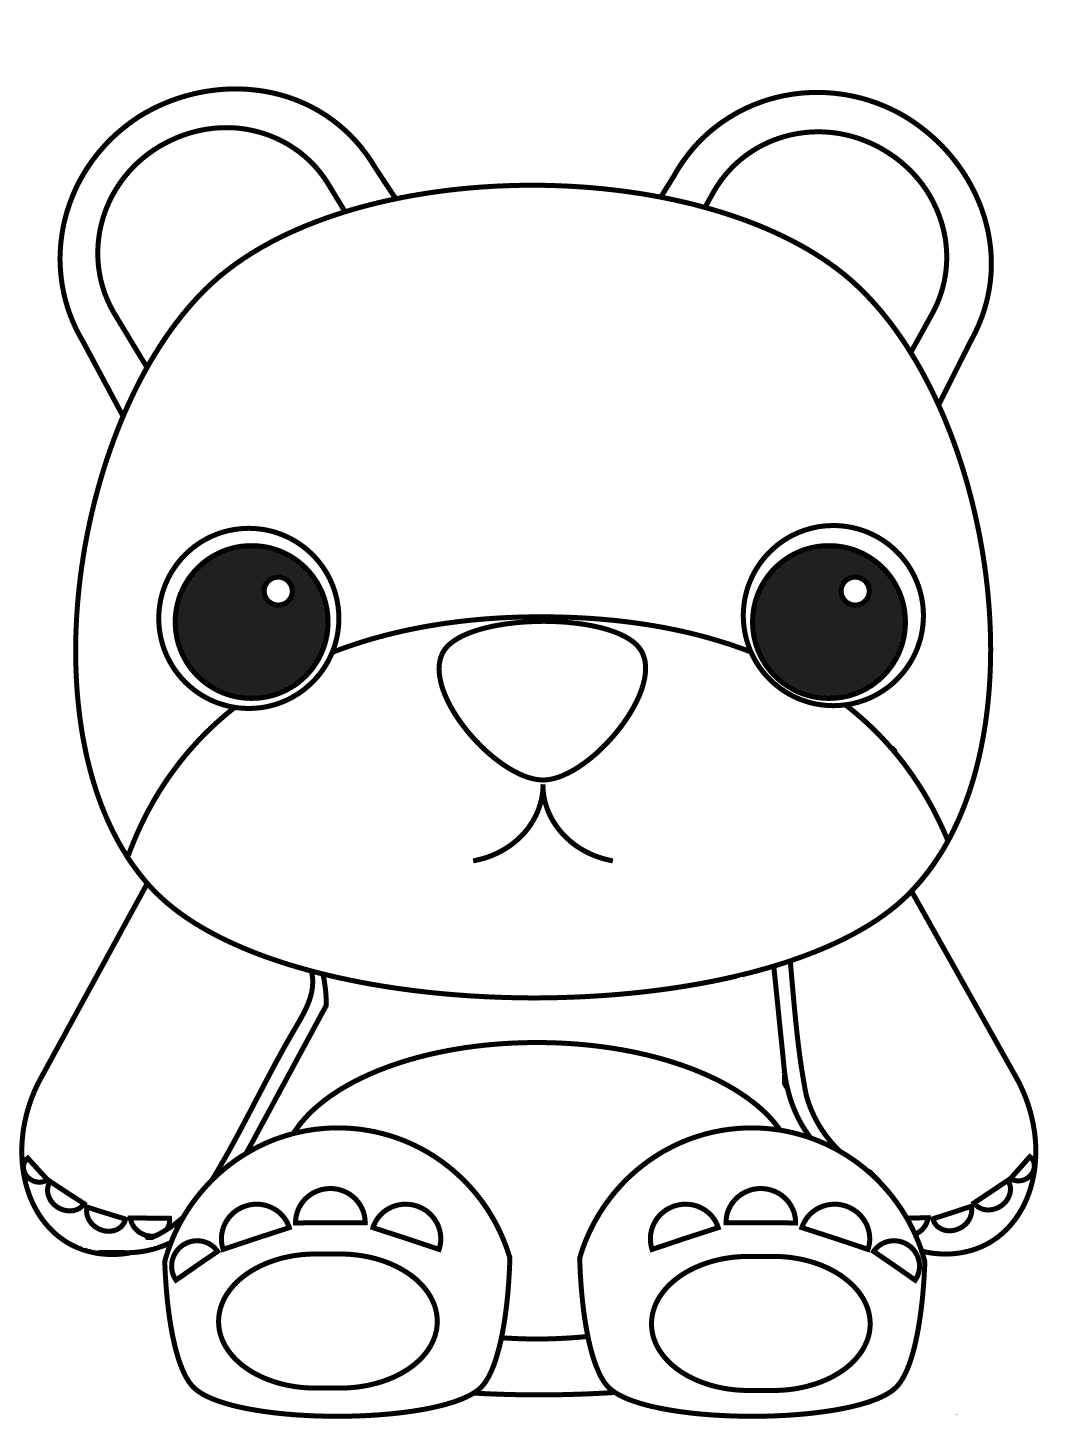 Teddy Bear Coloring Page For Preschoolers